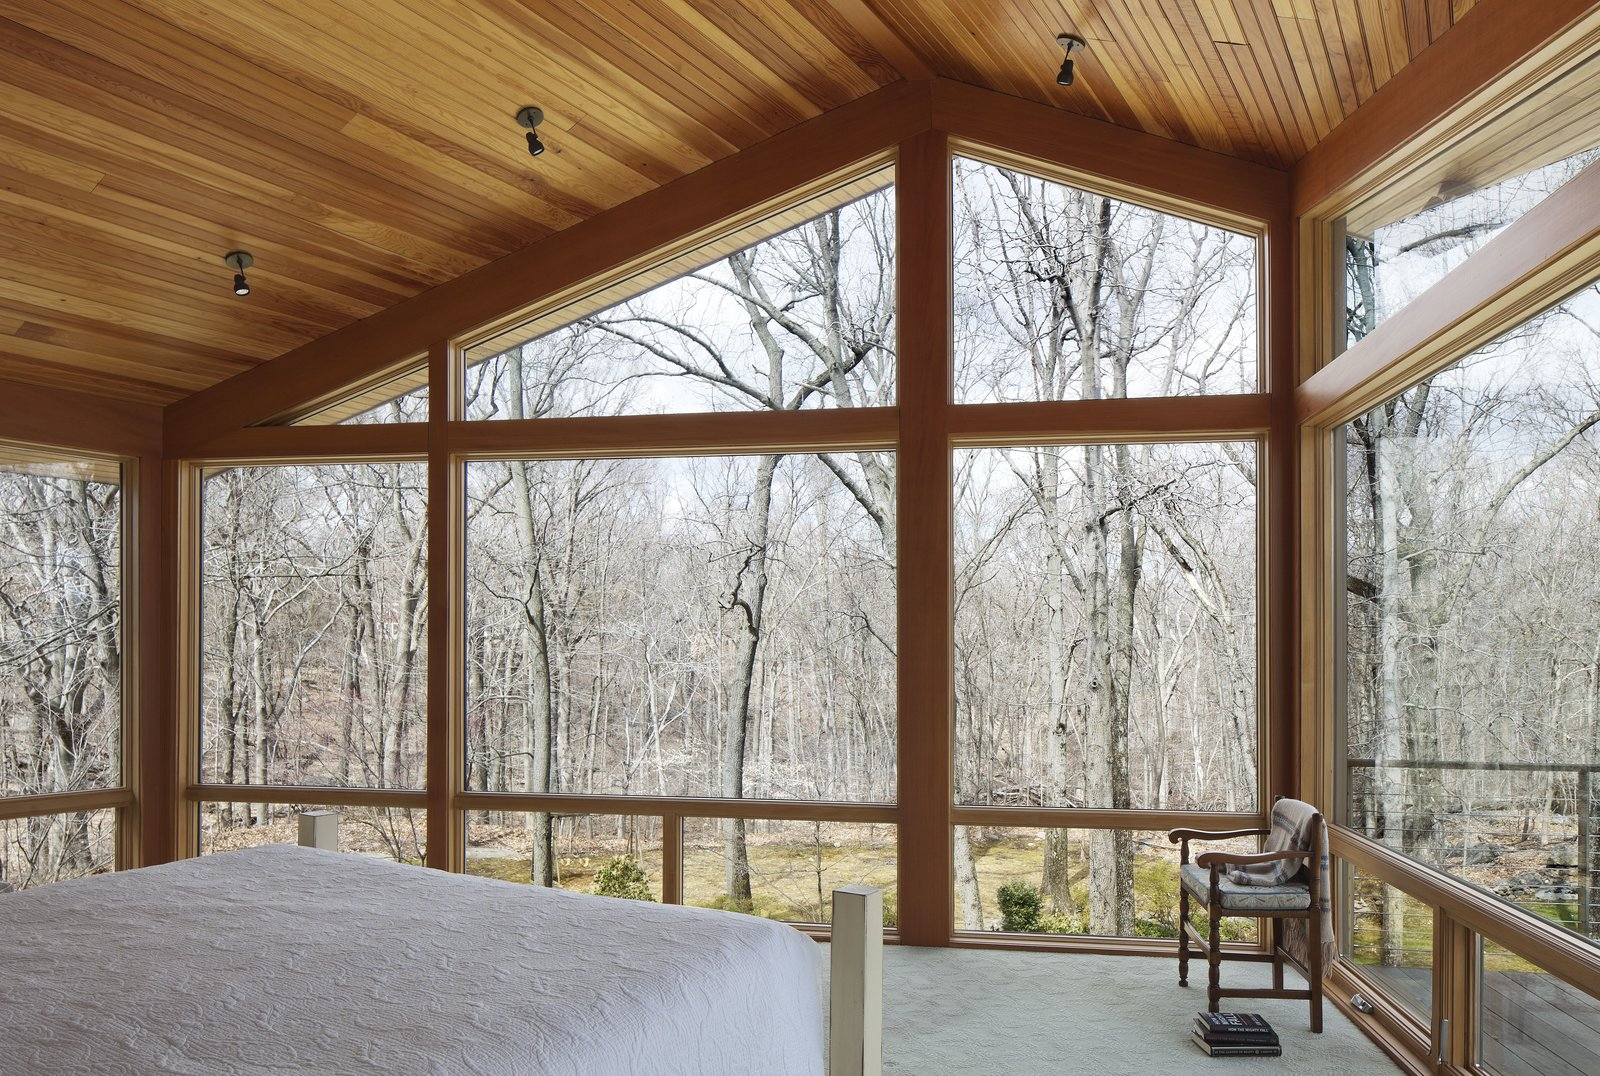 From the northeast corner of the master bedroom, the homeowners can walk out onto a deck area to enjoy the view of the woods.  Bedroom from After a Fire, a Midcentury Home Rises from the Ashes